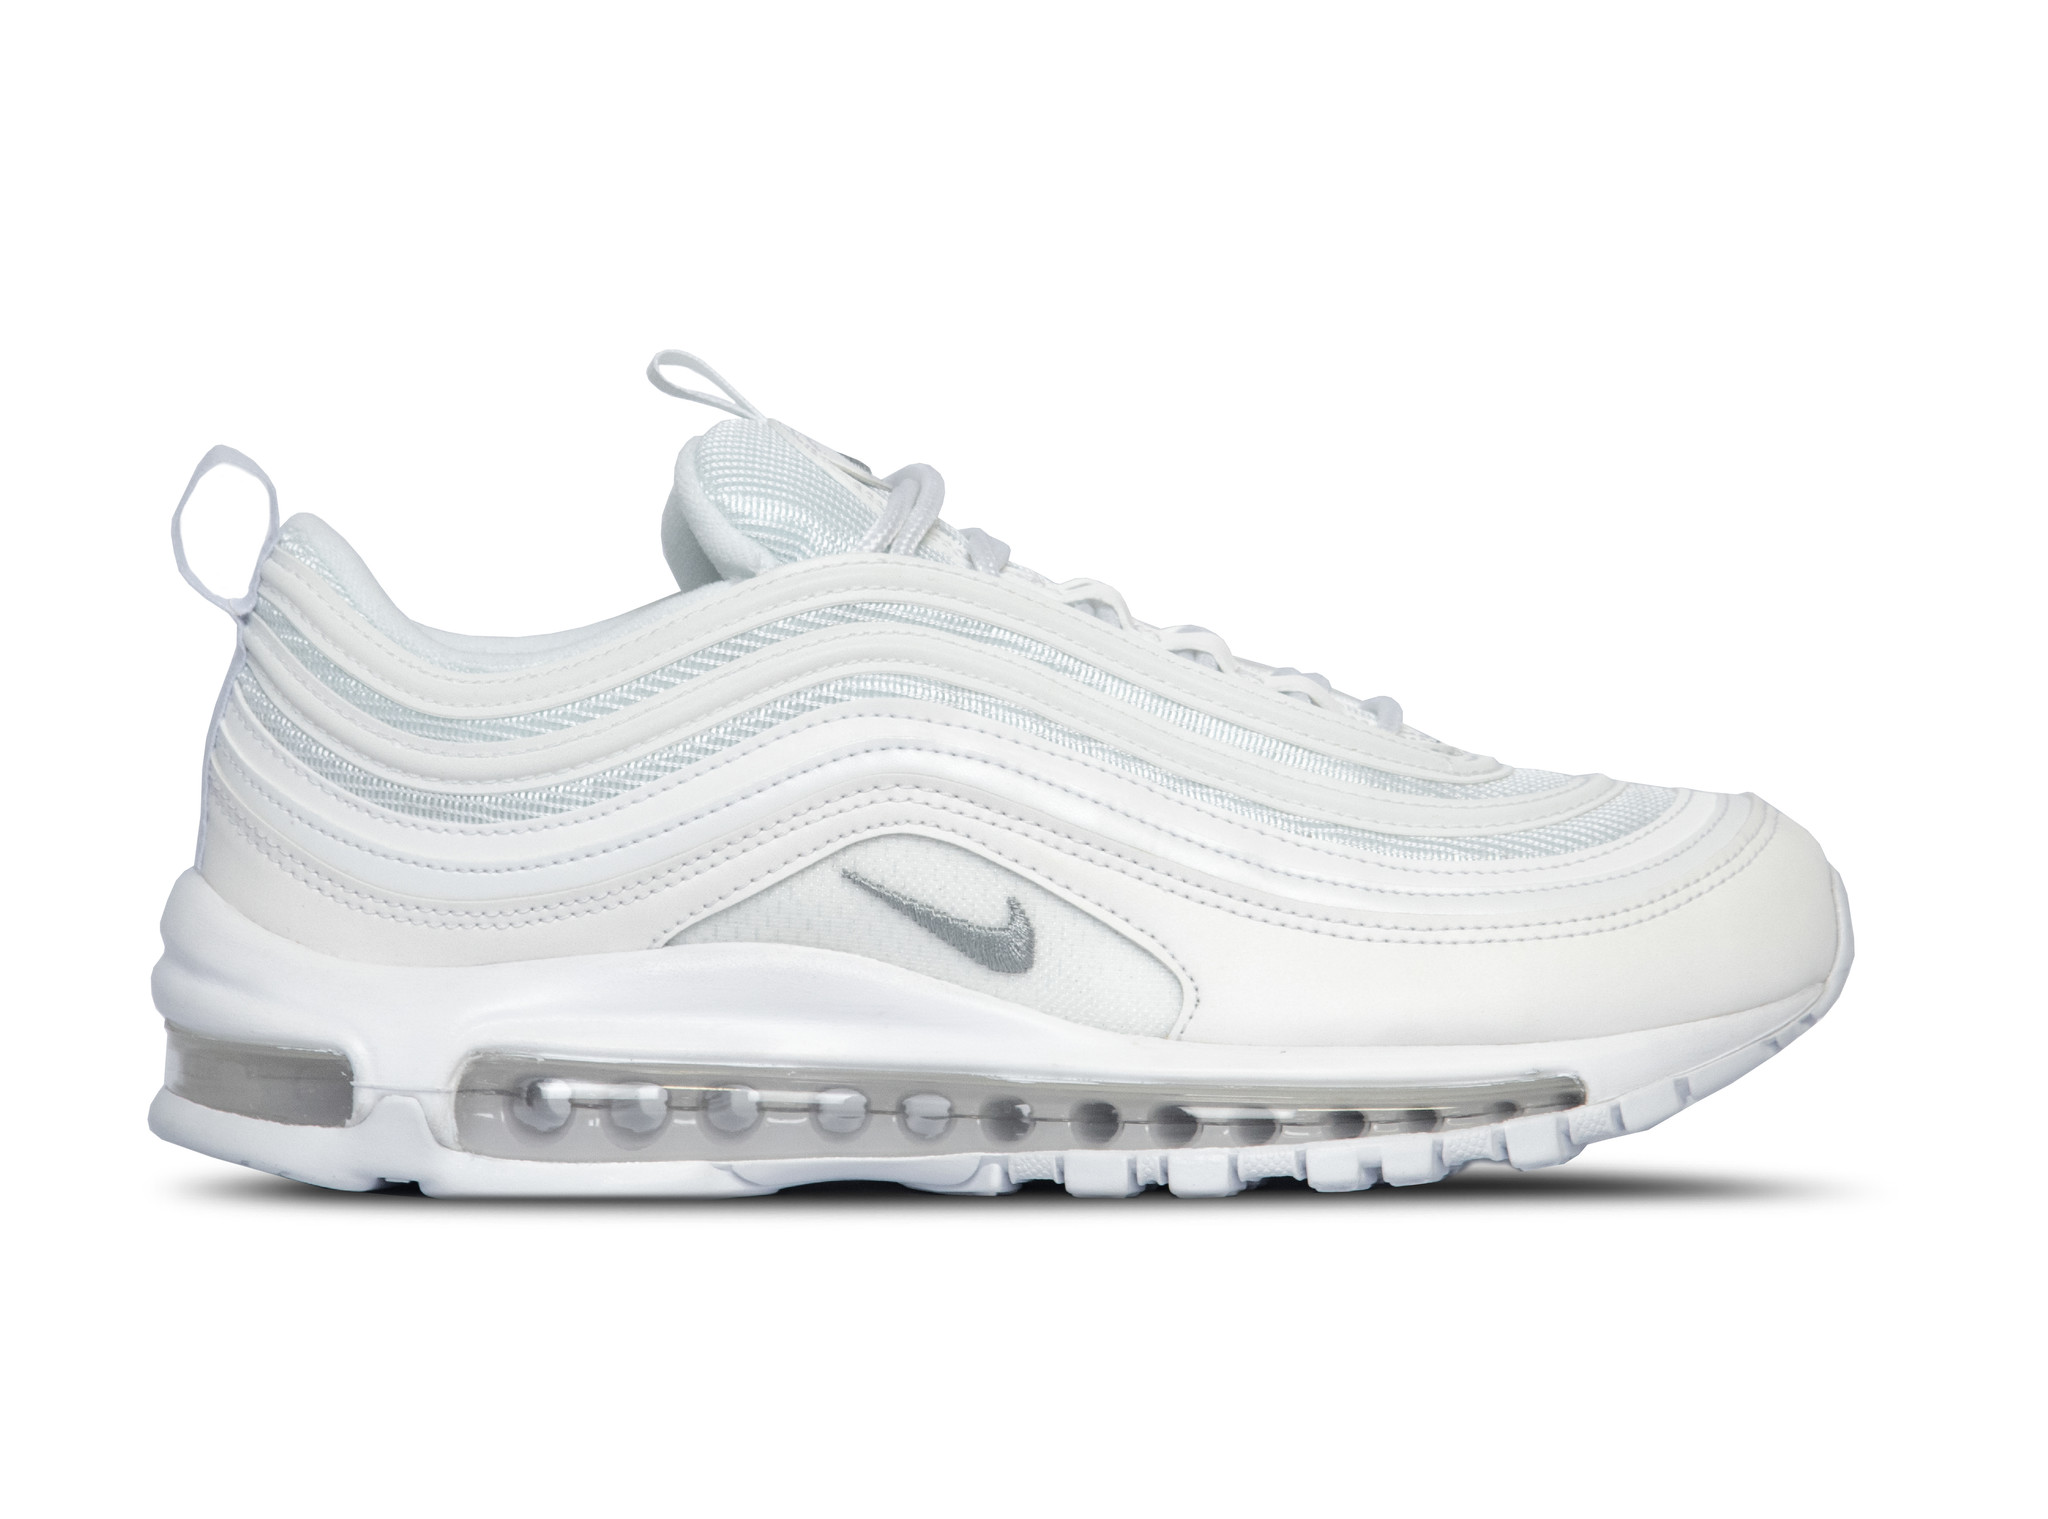 Air Max 97 White Wolf Grey Black 921826 101 Bruut Online